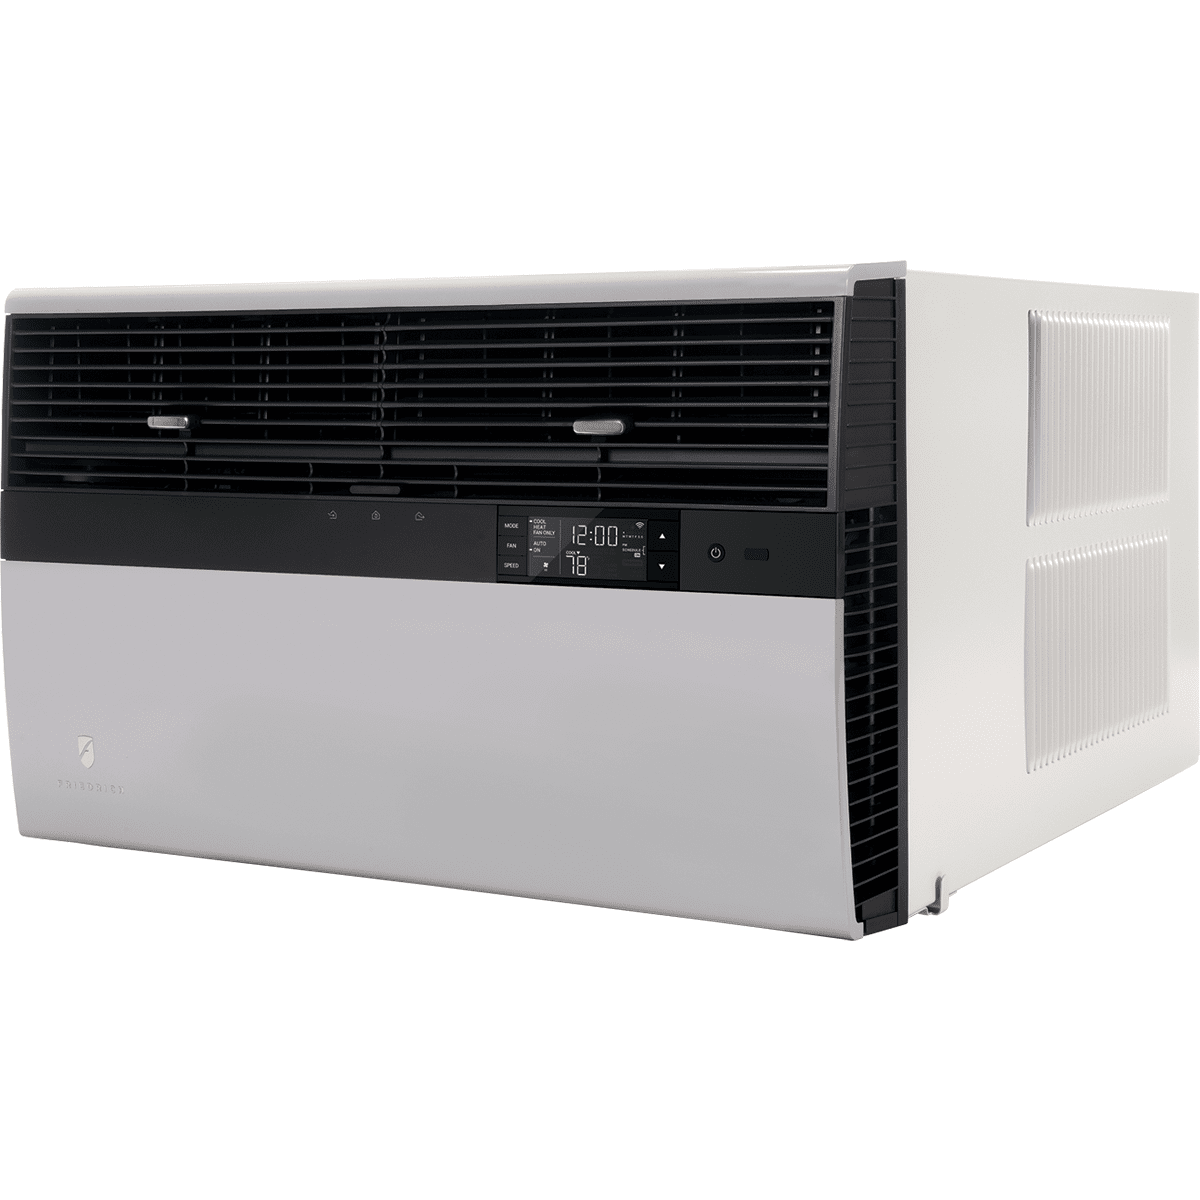 Friedrich Kuhl 14,000 BTU Window Air Conditioner